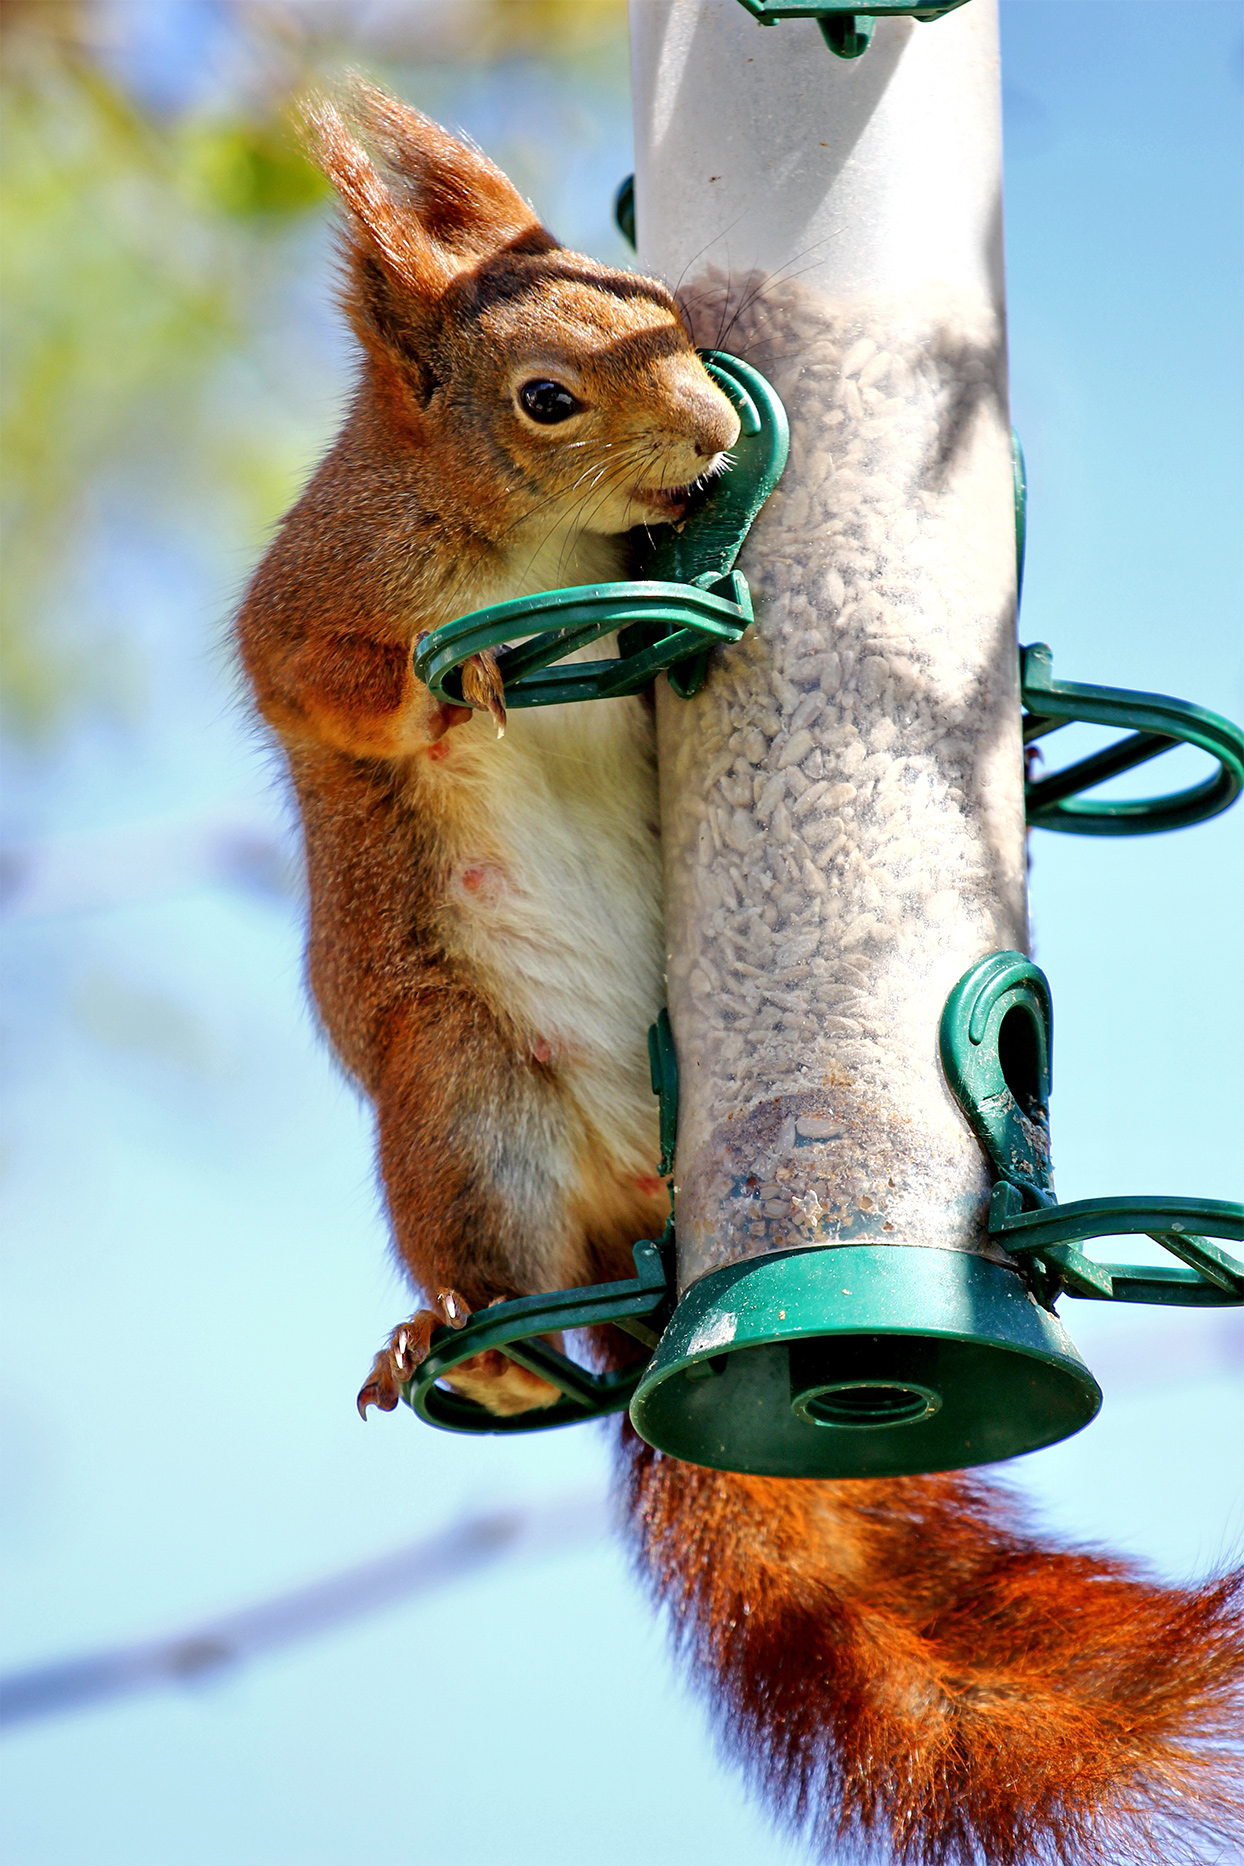 red squirrel eating from bird feeder